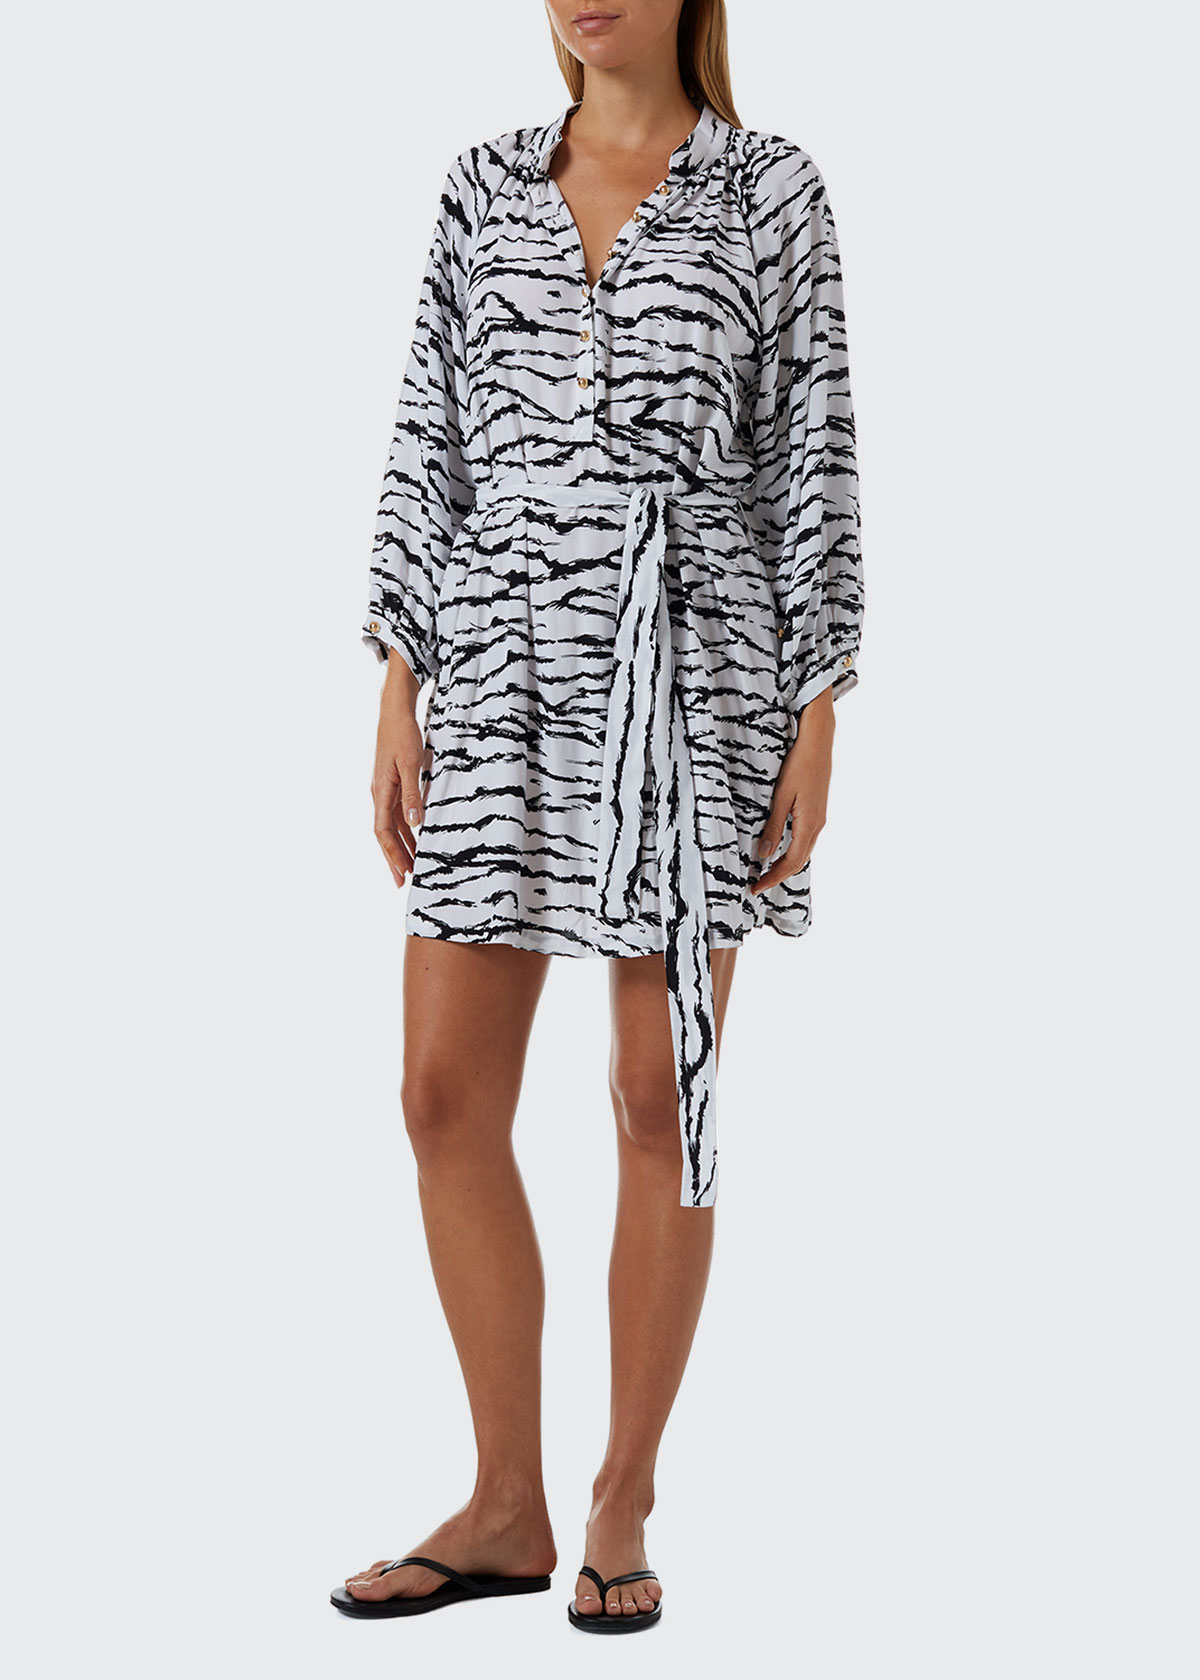 Melissa Odabash AMY TIGER-STRIPE COVERUP SHIRTDRESS